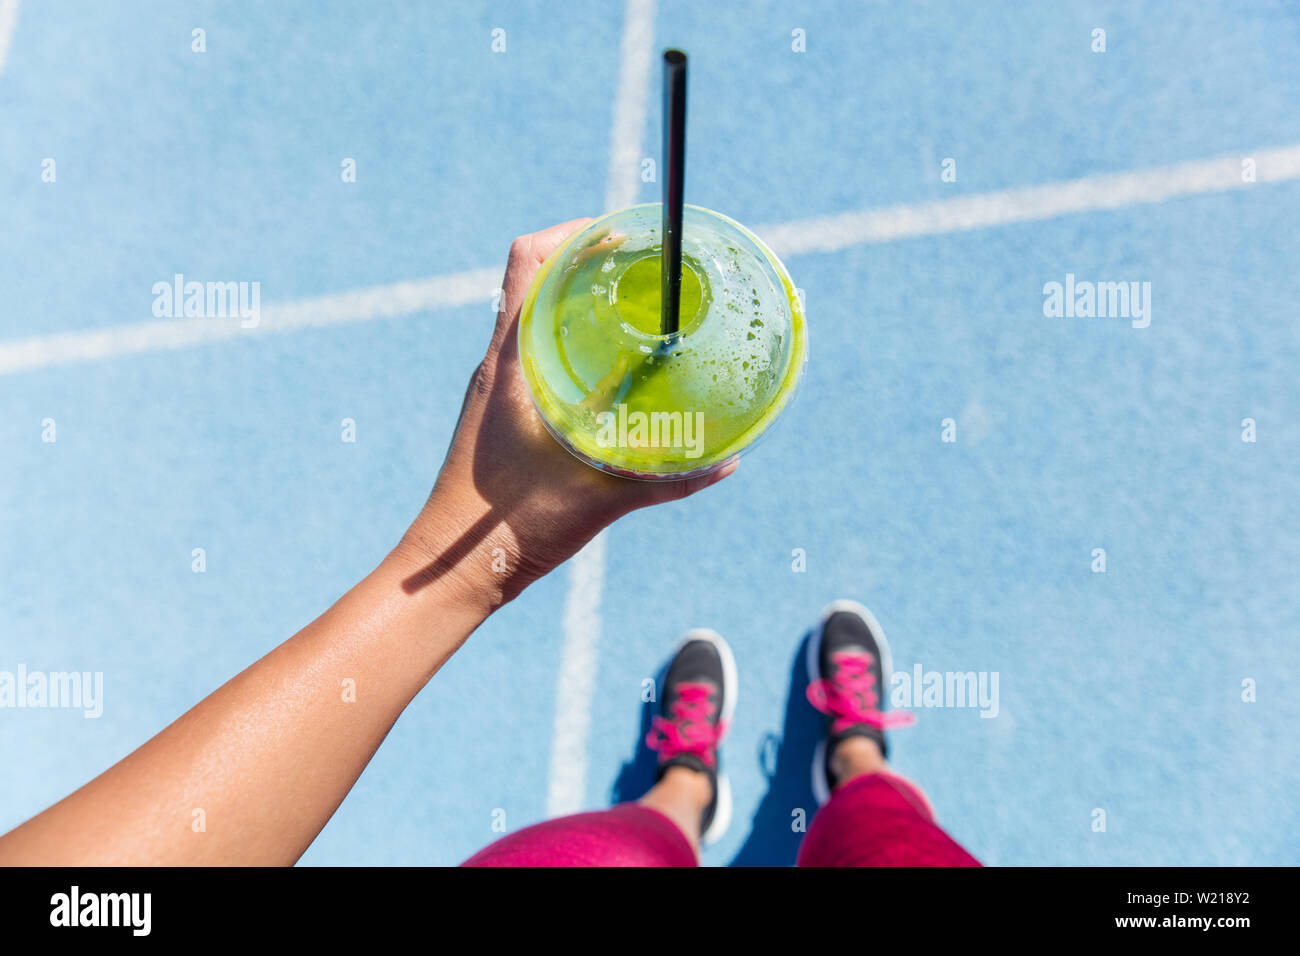 Runner drinking a healthy spinach green smoothie on outdoor running track getting ready for run. Closeup of hand holding juice drink on blue lane, social media health and fitness concept. Stock Photo